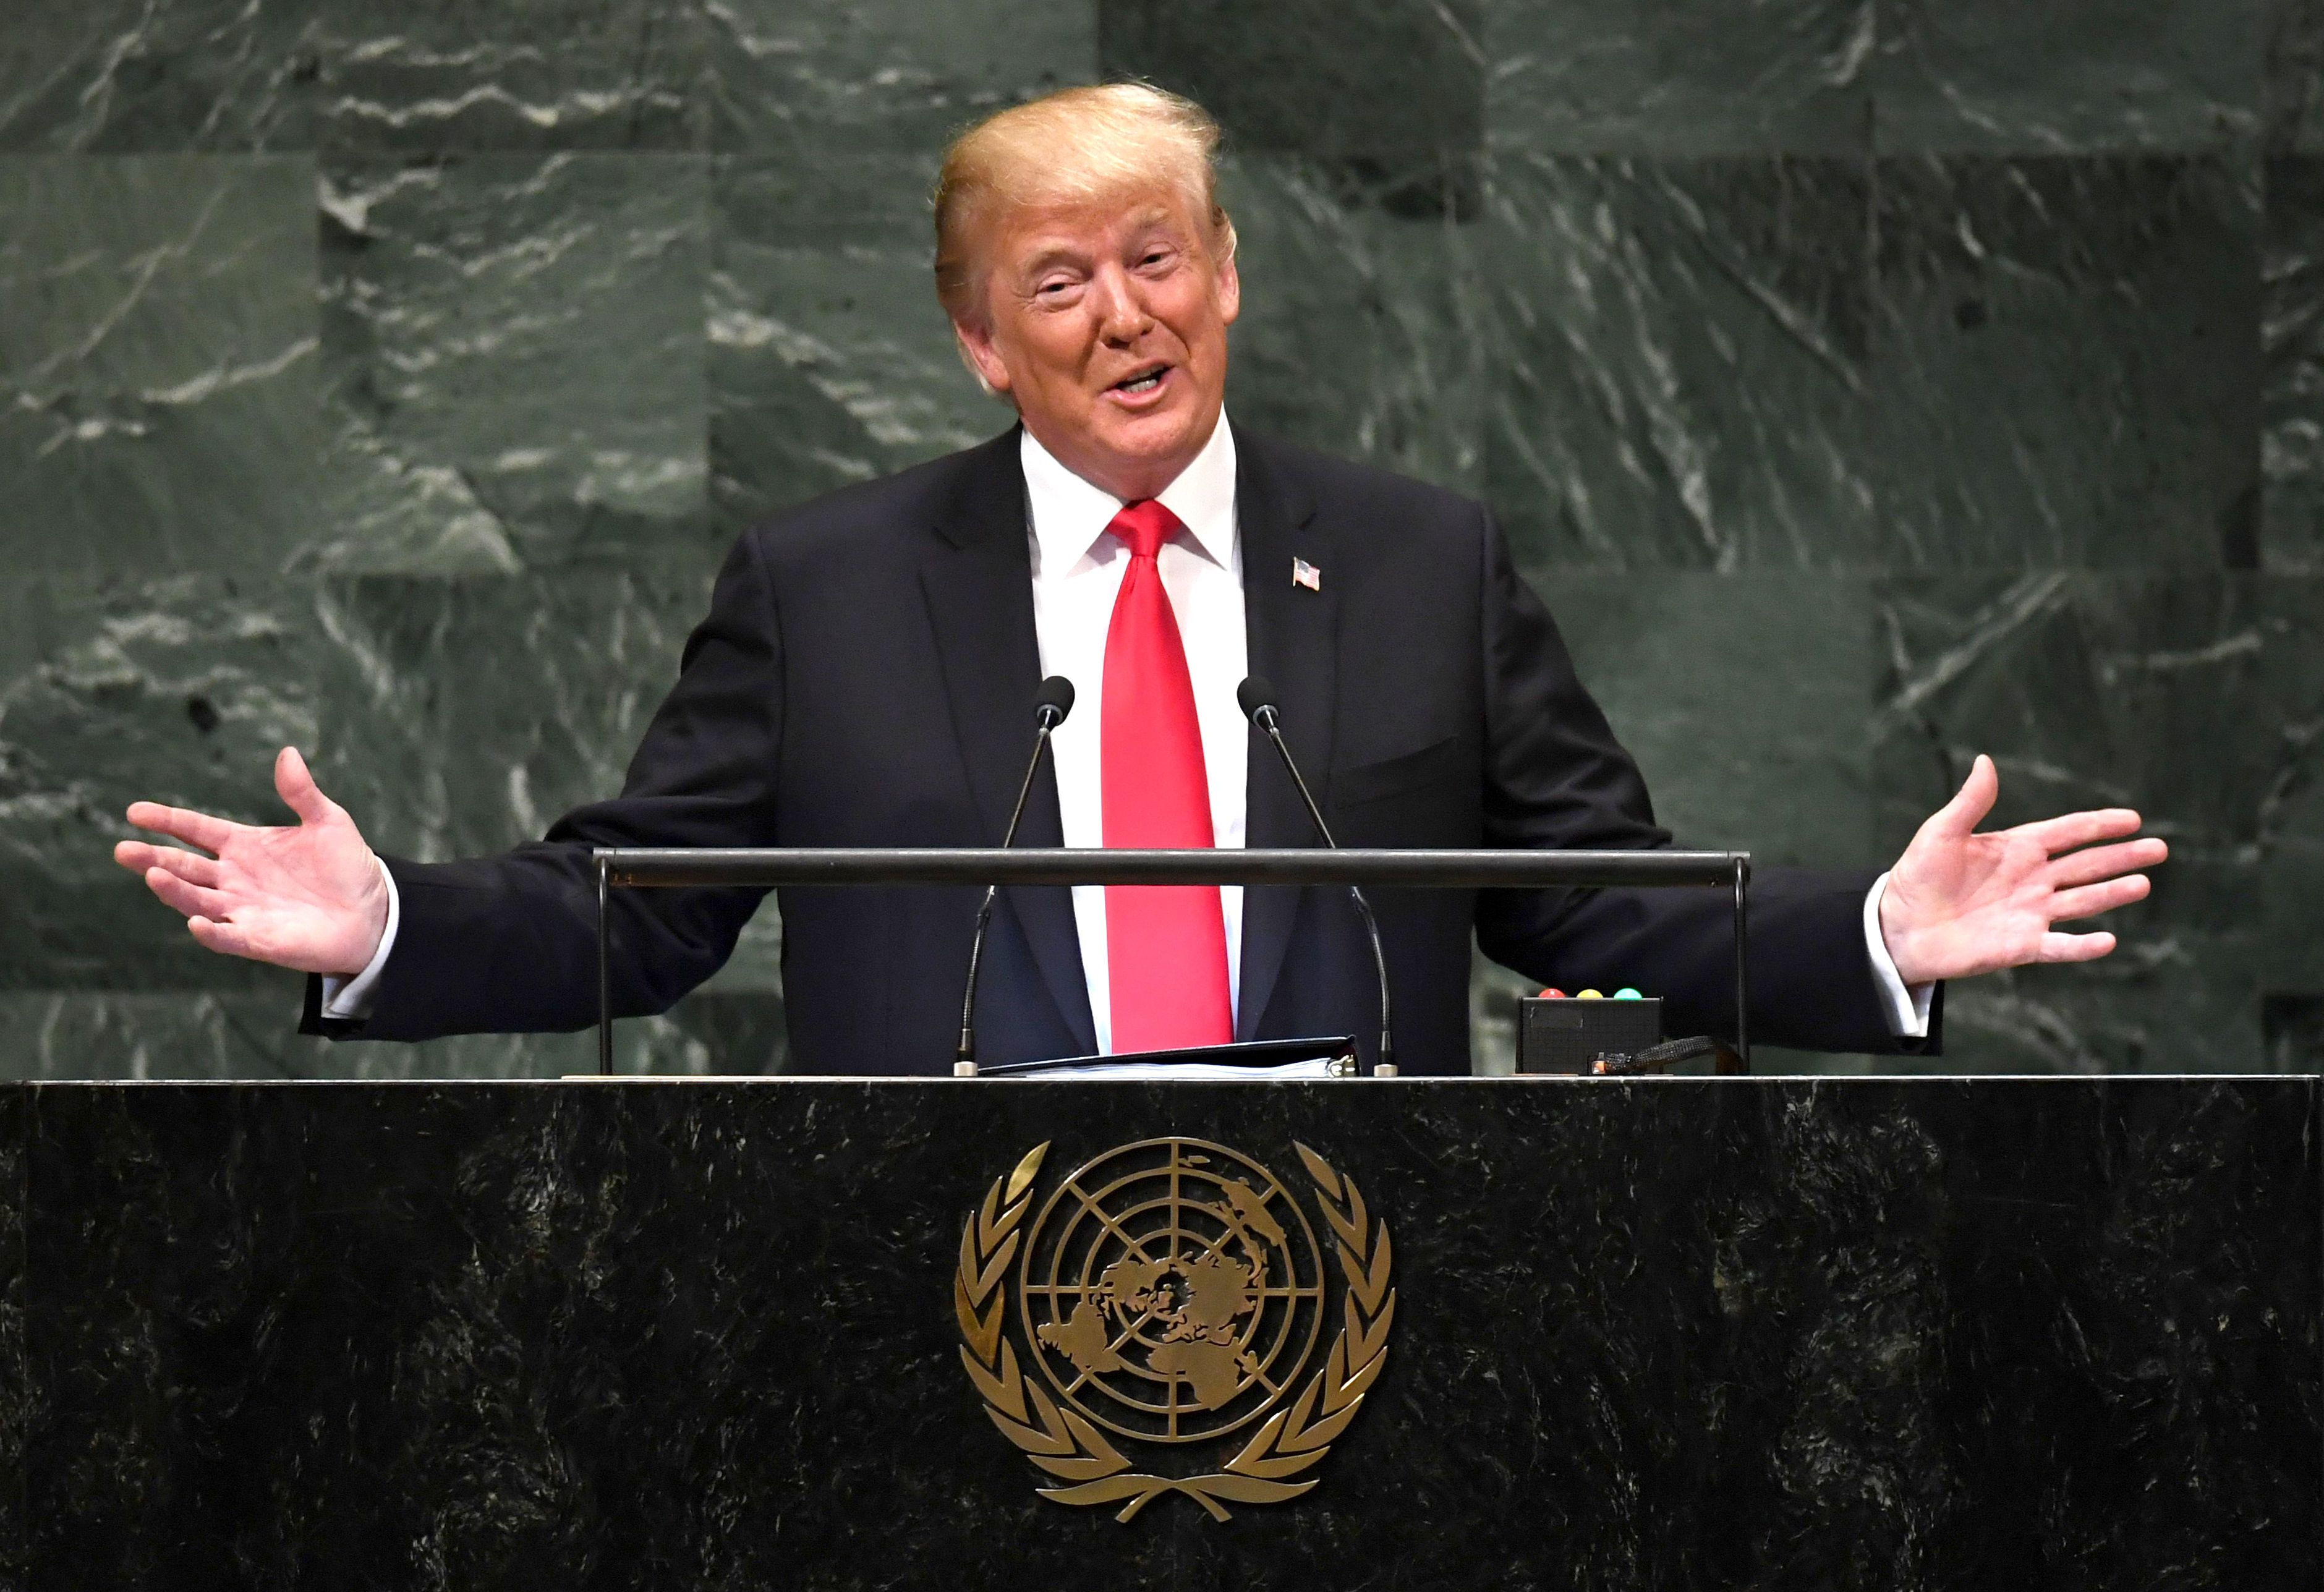 We Reject Globalism.' President Trump Took 'America First' to the United Nations | Time